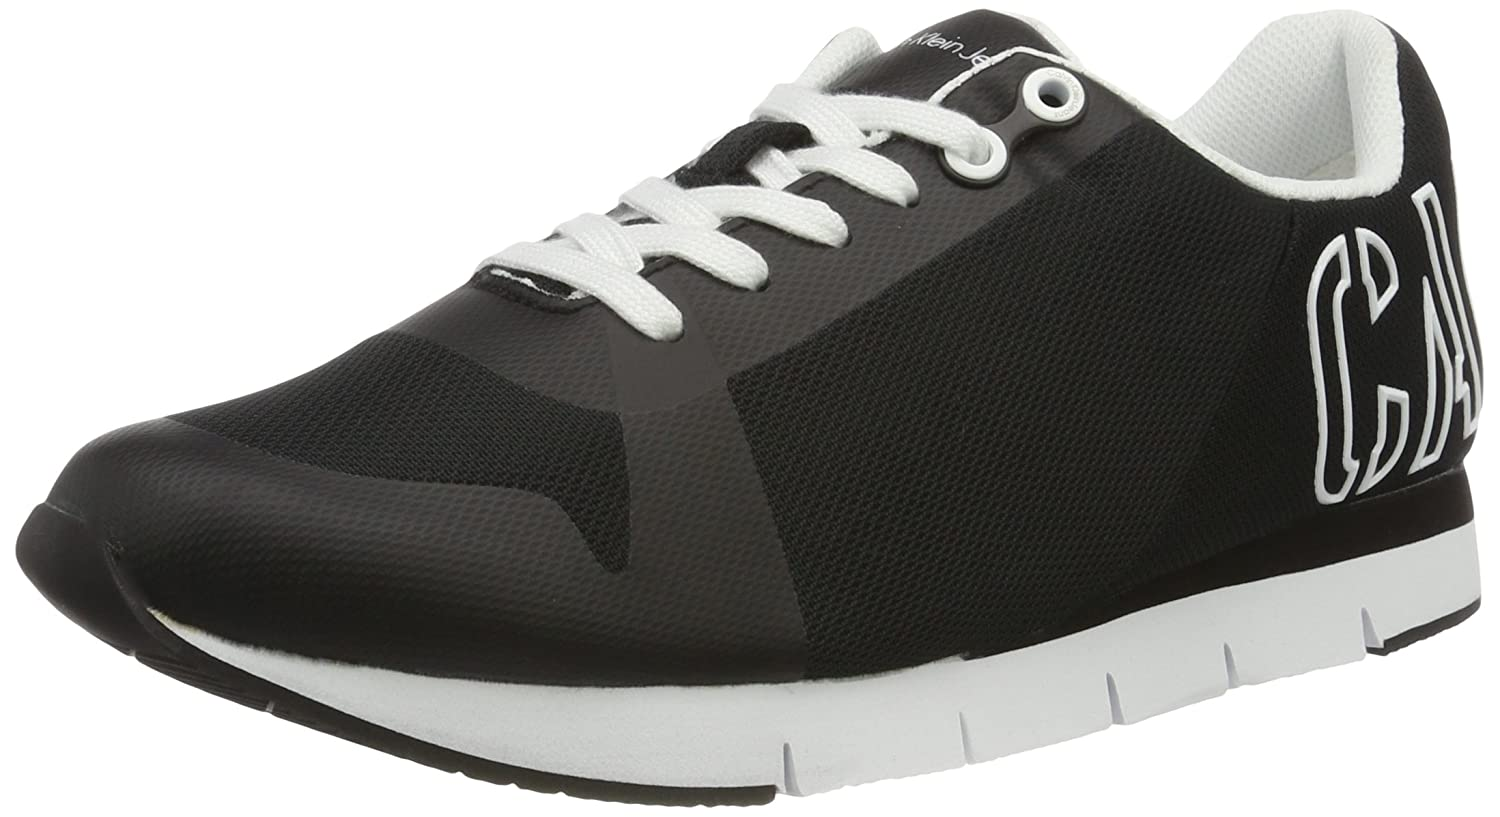 Jabre Mesh/Hf, Sneakers Basses Homme, Multicolore (Bwy), 45 EUCalvin Klein Jeans